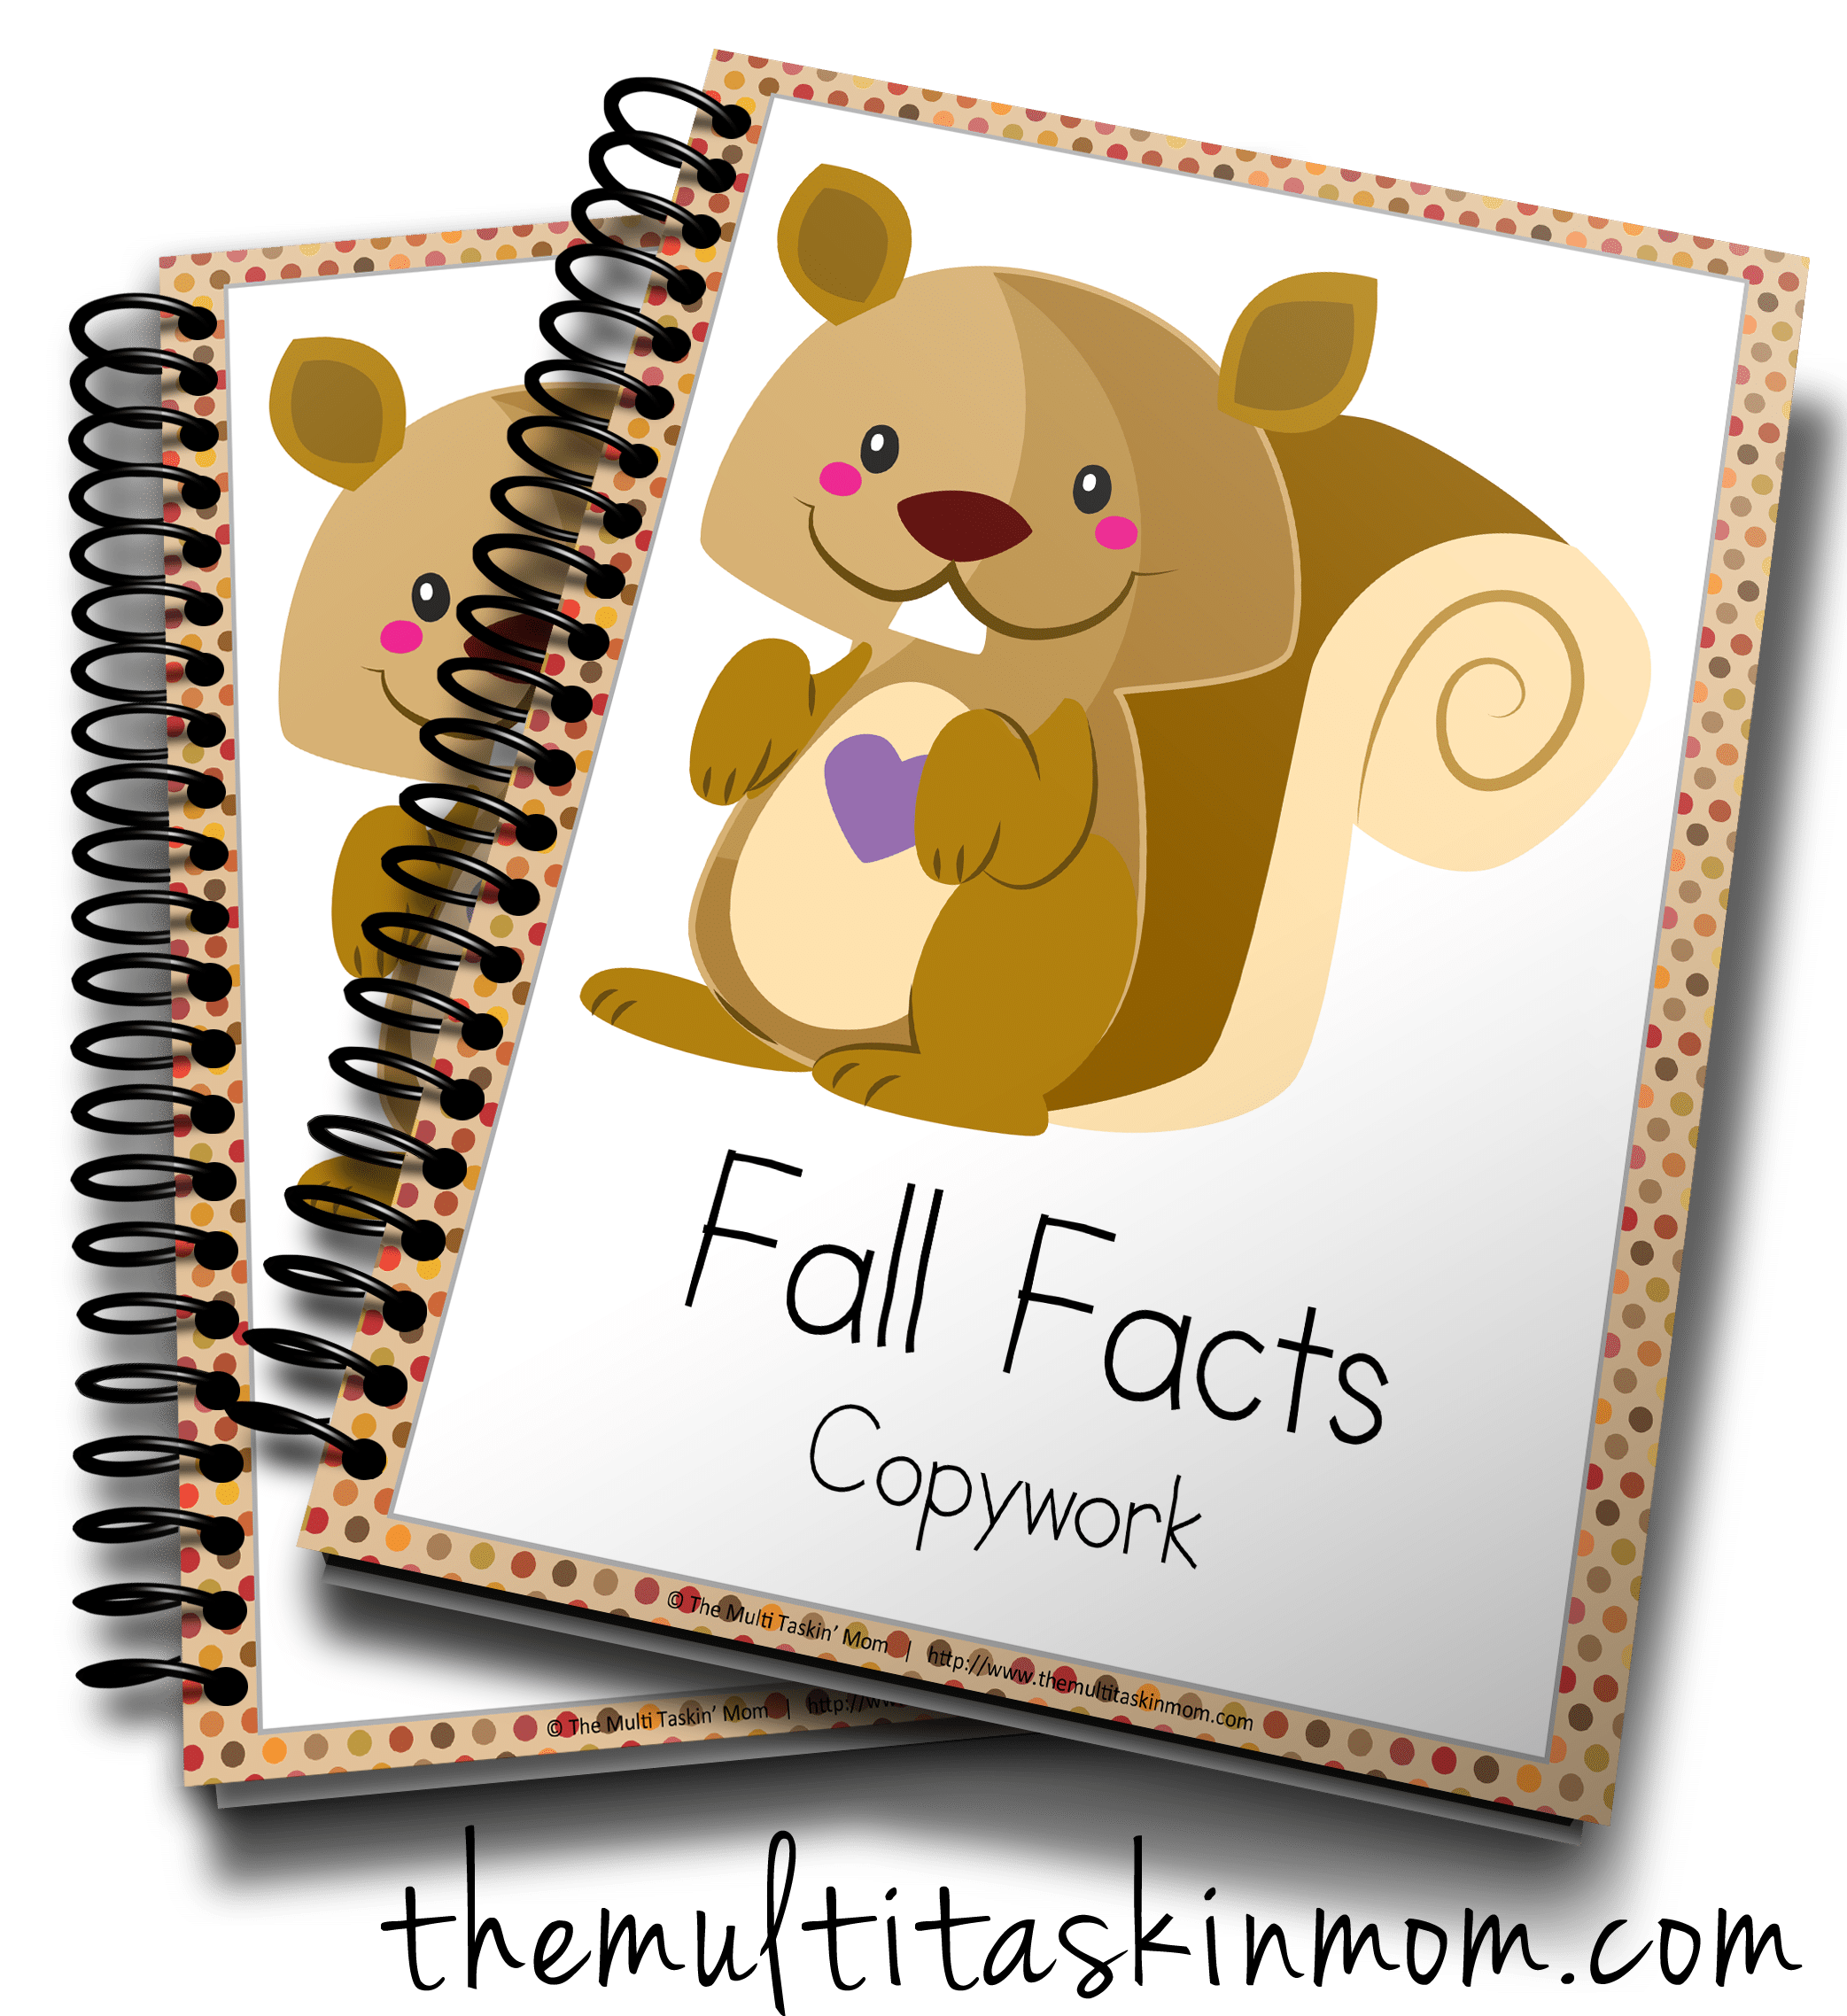 fall-facts-copywork